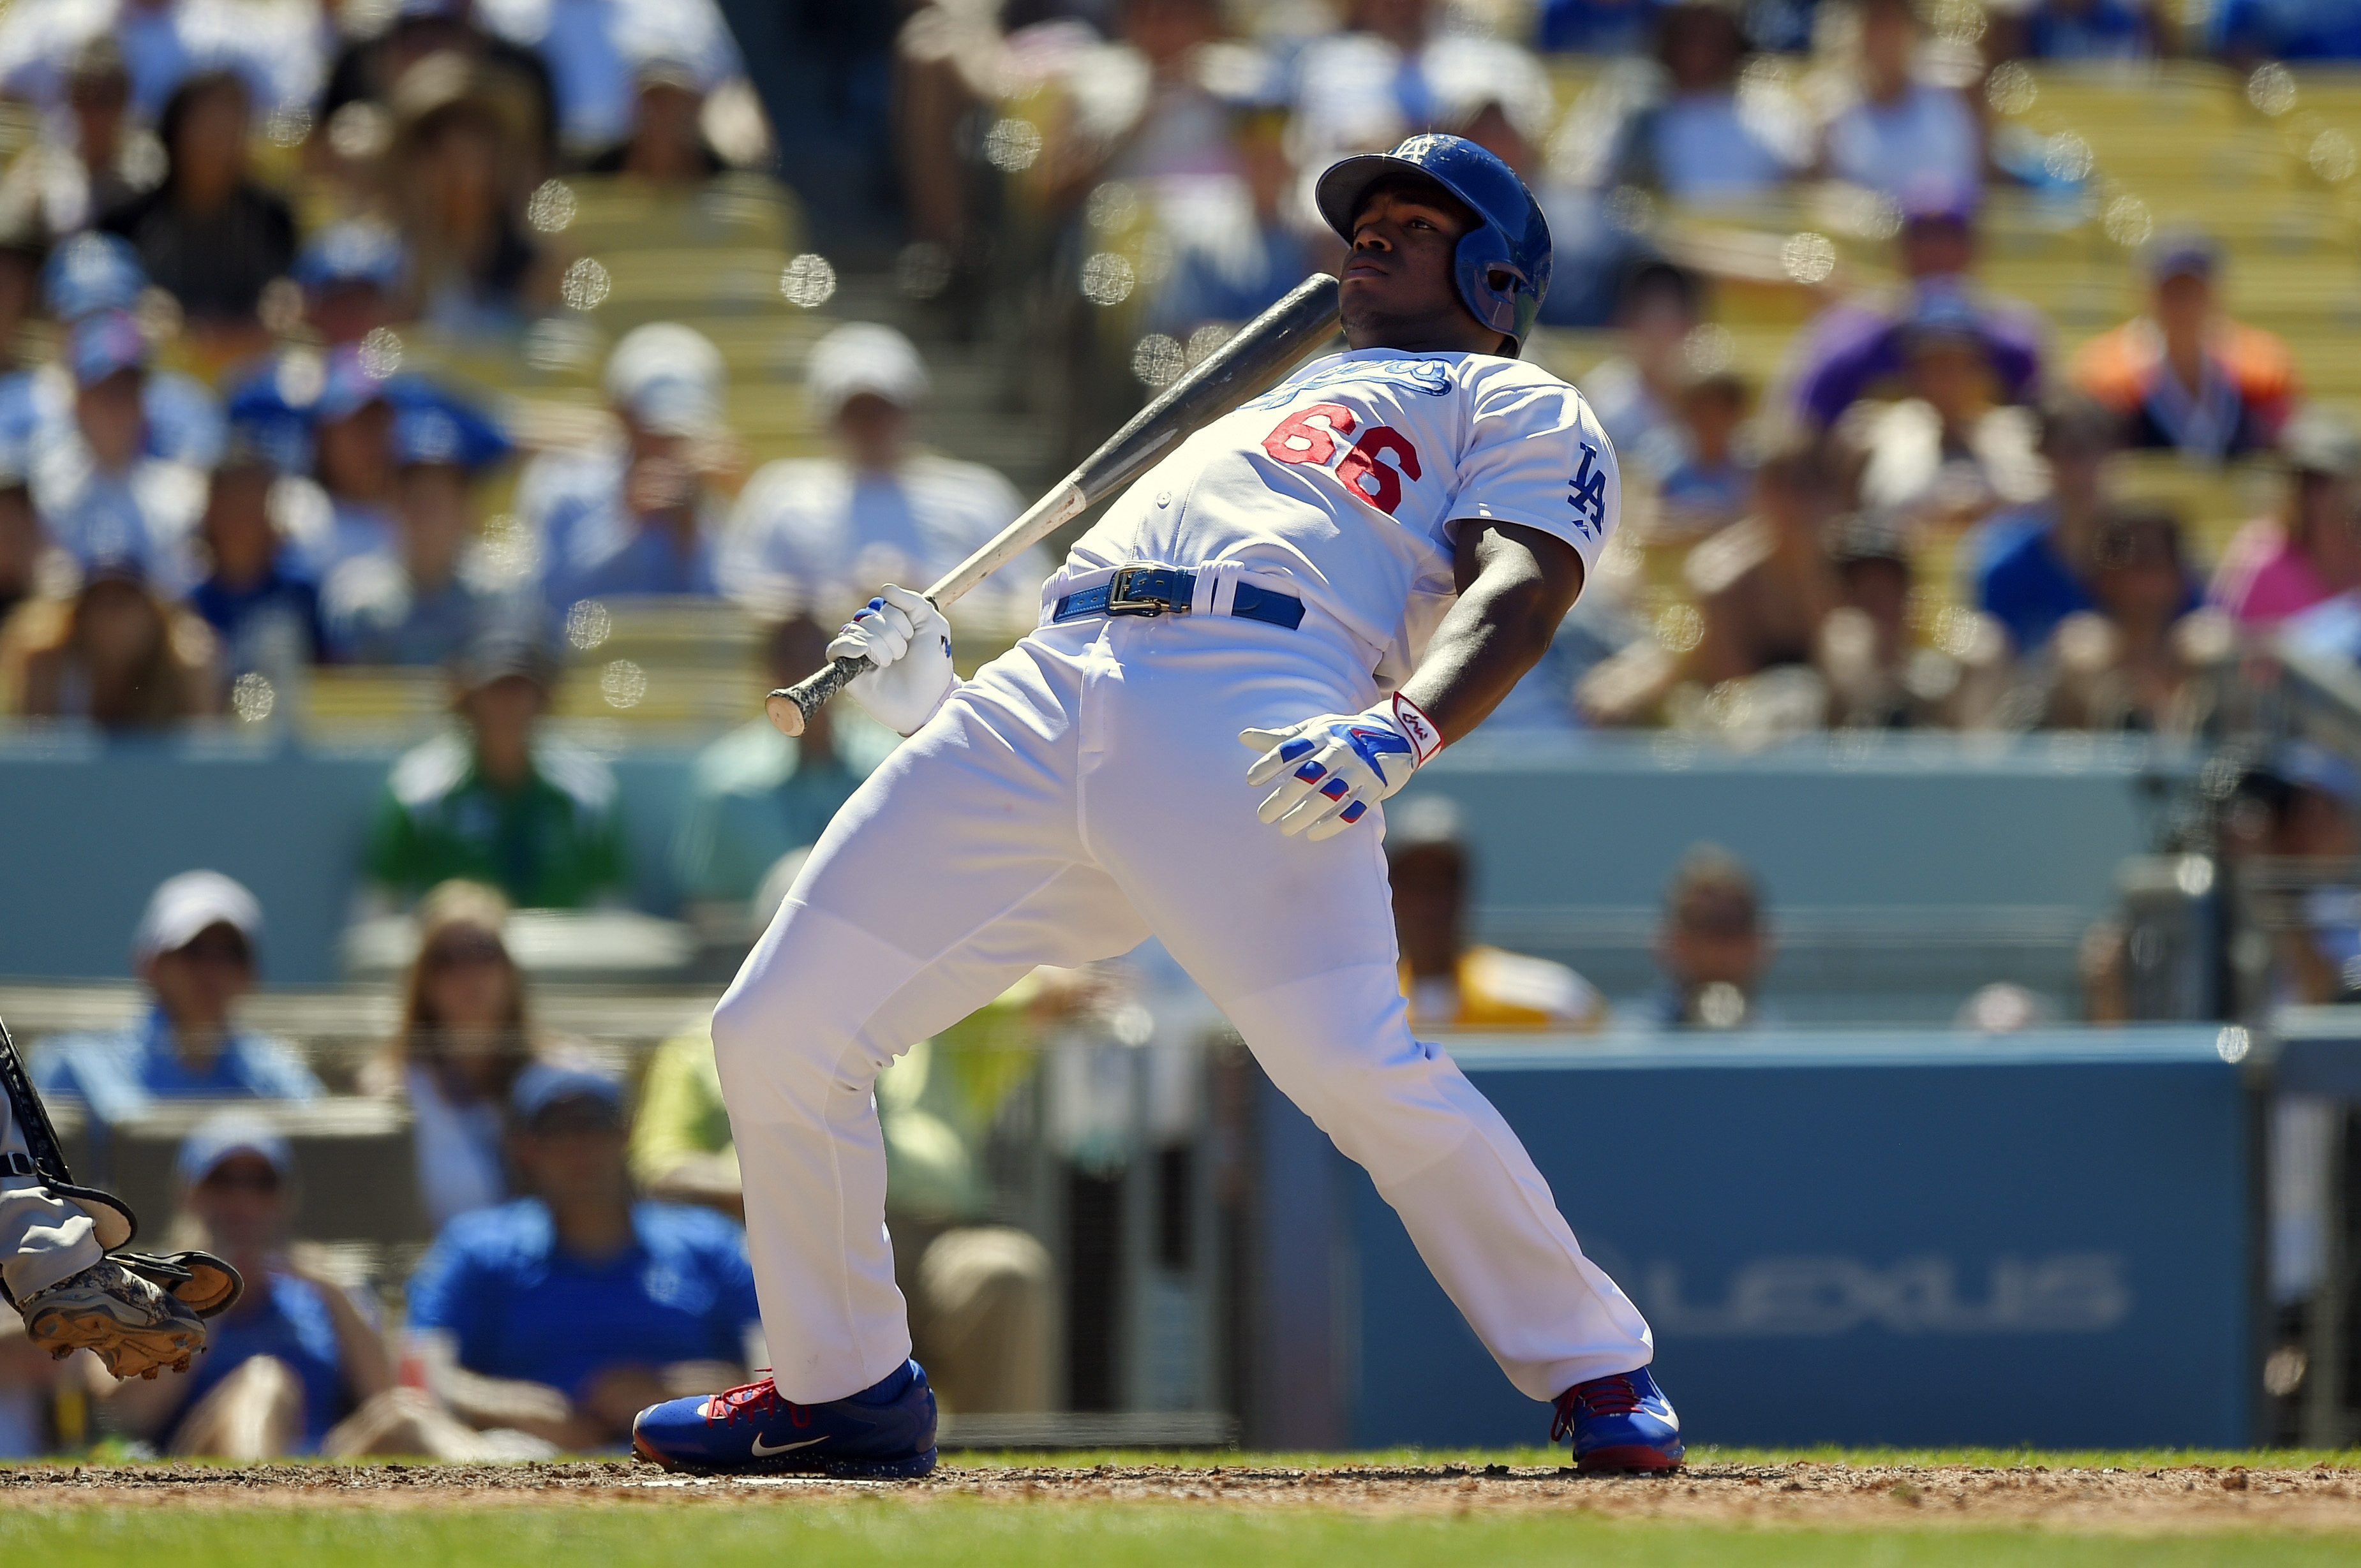 Los Angeles Dodgers' Yasiel Puig leans out of the way of a close pitch during the eighth inning of a baseball game against the Milwaukee Brewers, Sunday, July 12, 2015, in Los Angeles. (AP Photo/Mark J. Terrill)